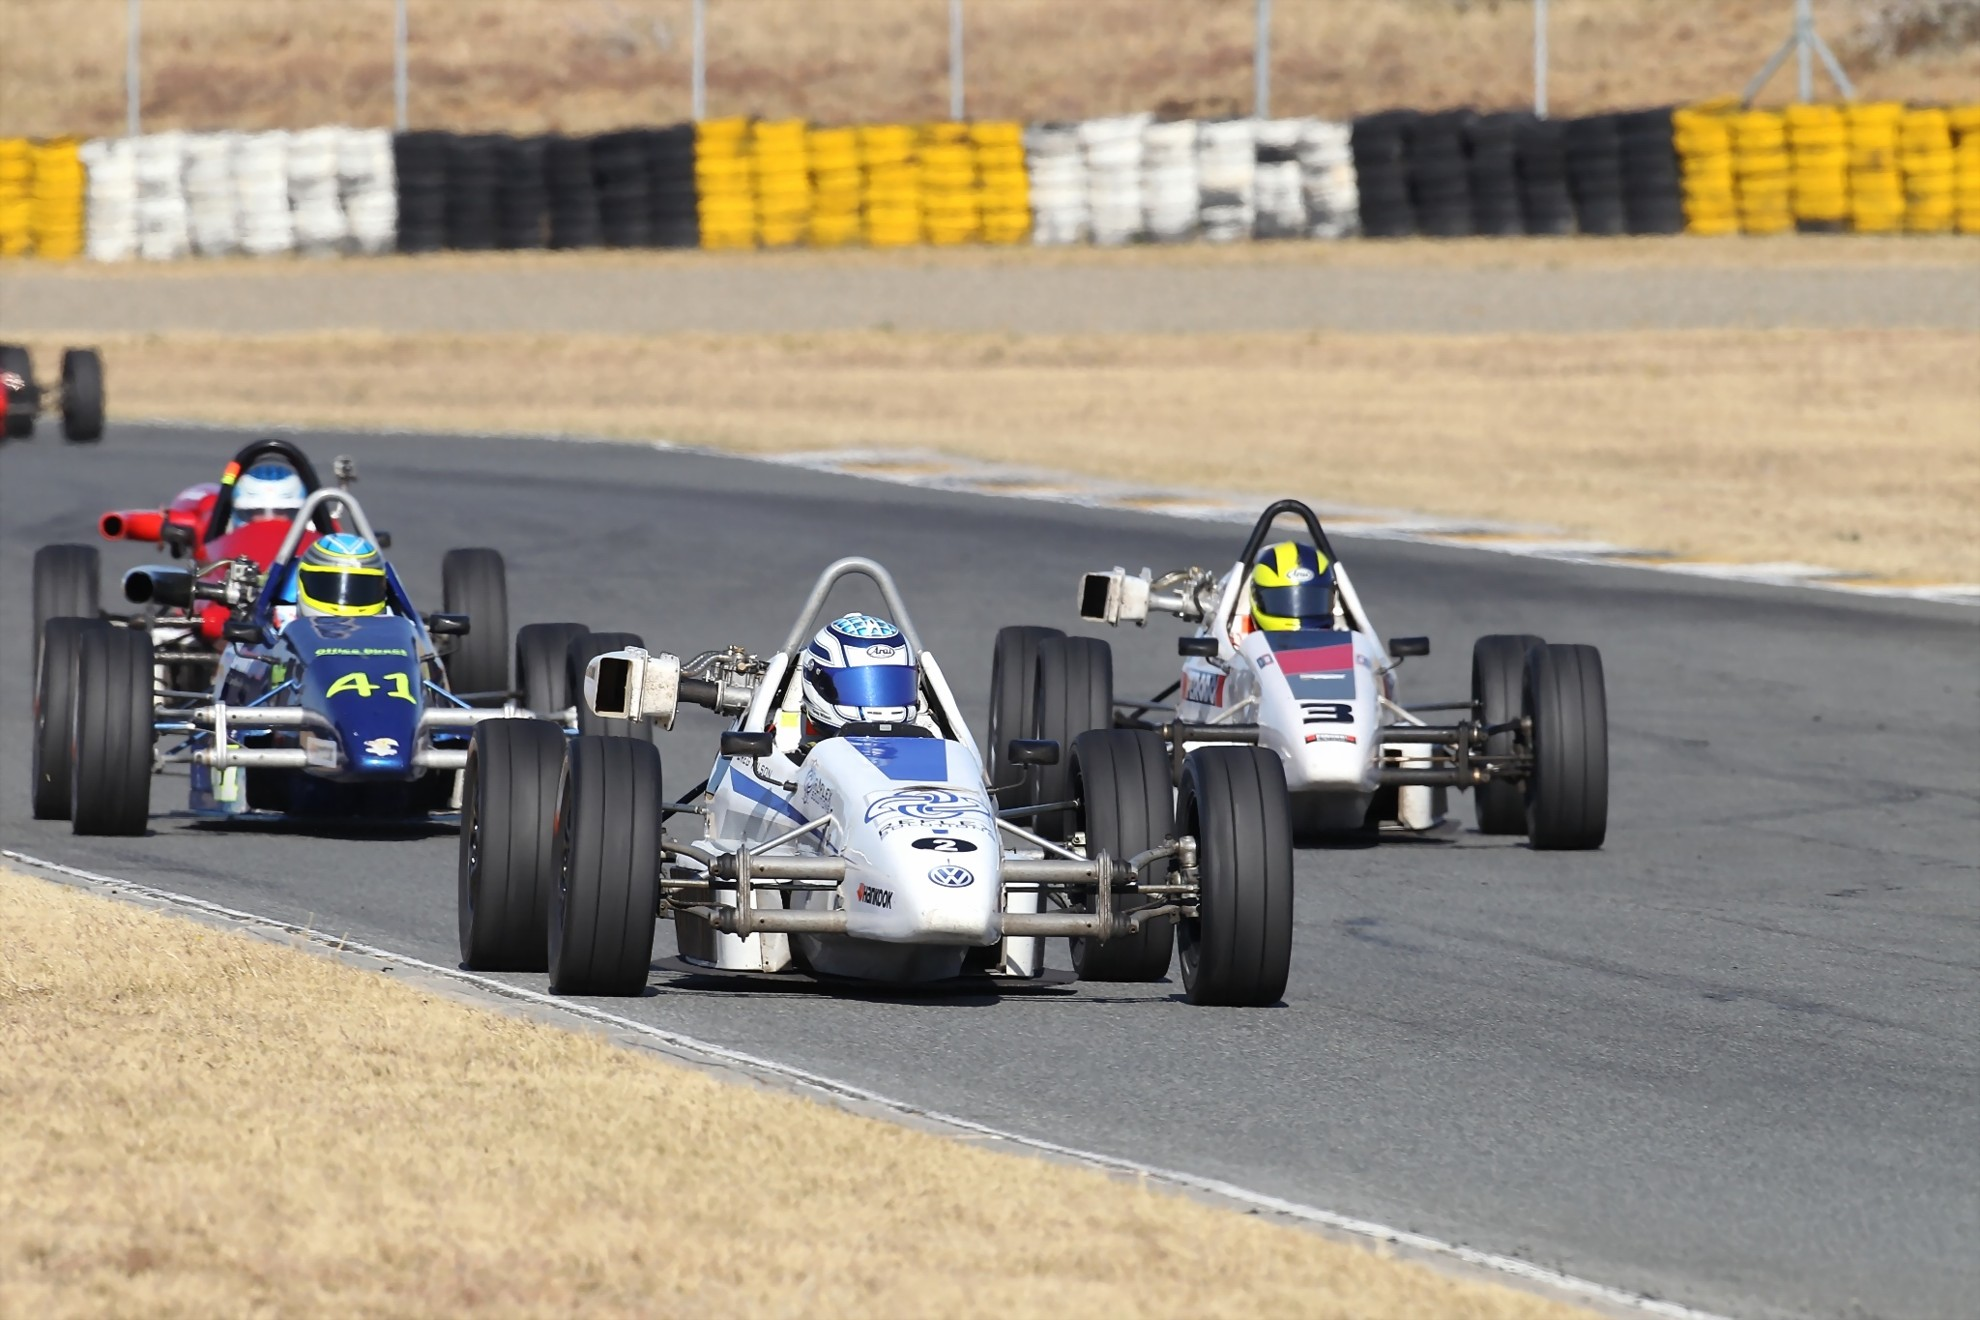 Free State Extreme Festival